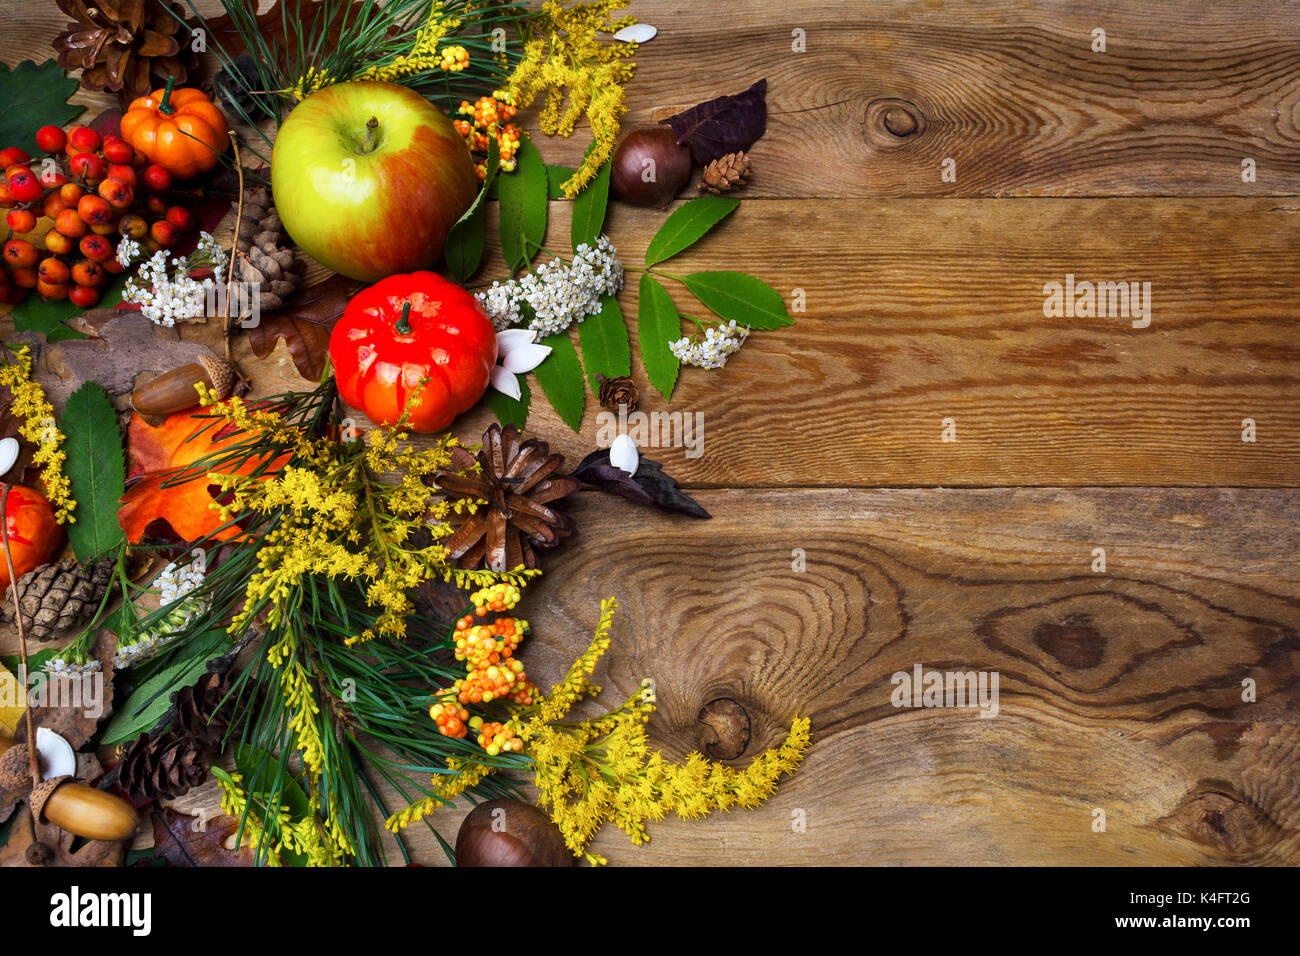 Happy Thanksgiving Decor With Pumpkin Apples And Rowan Berries On The Left Side Of Rustic Wooden Table Fall Background Seasonal Vegetables